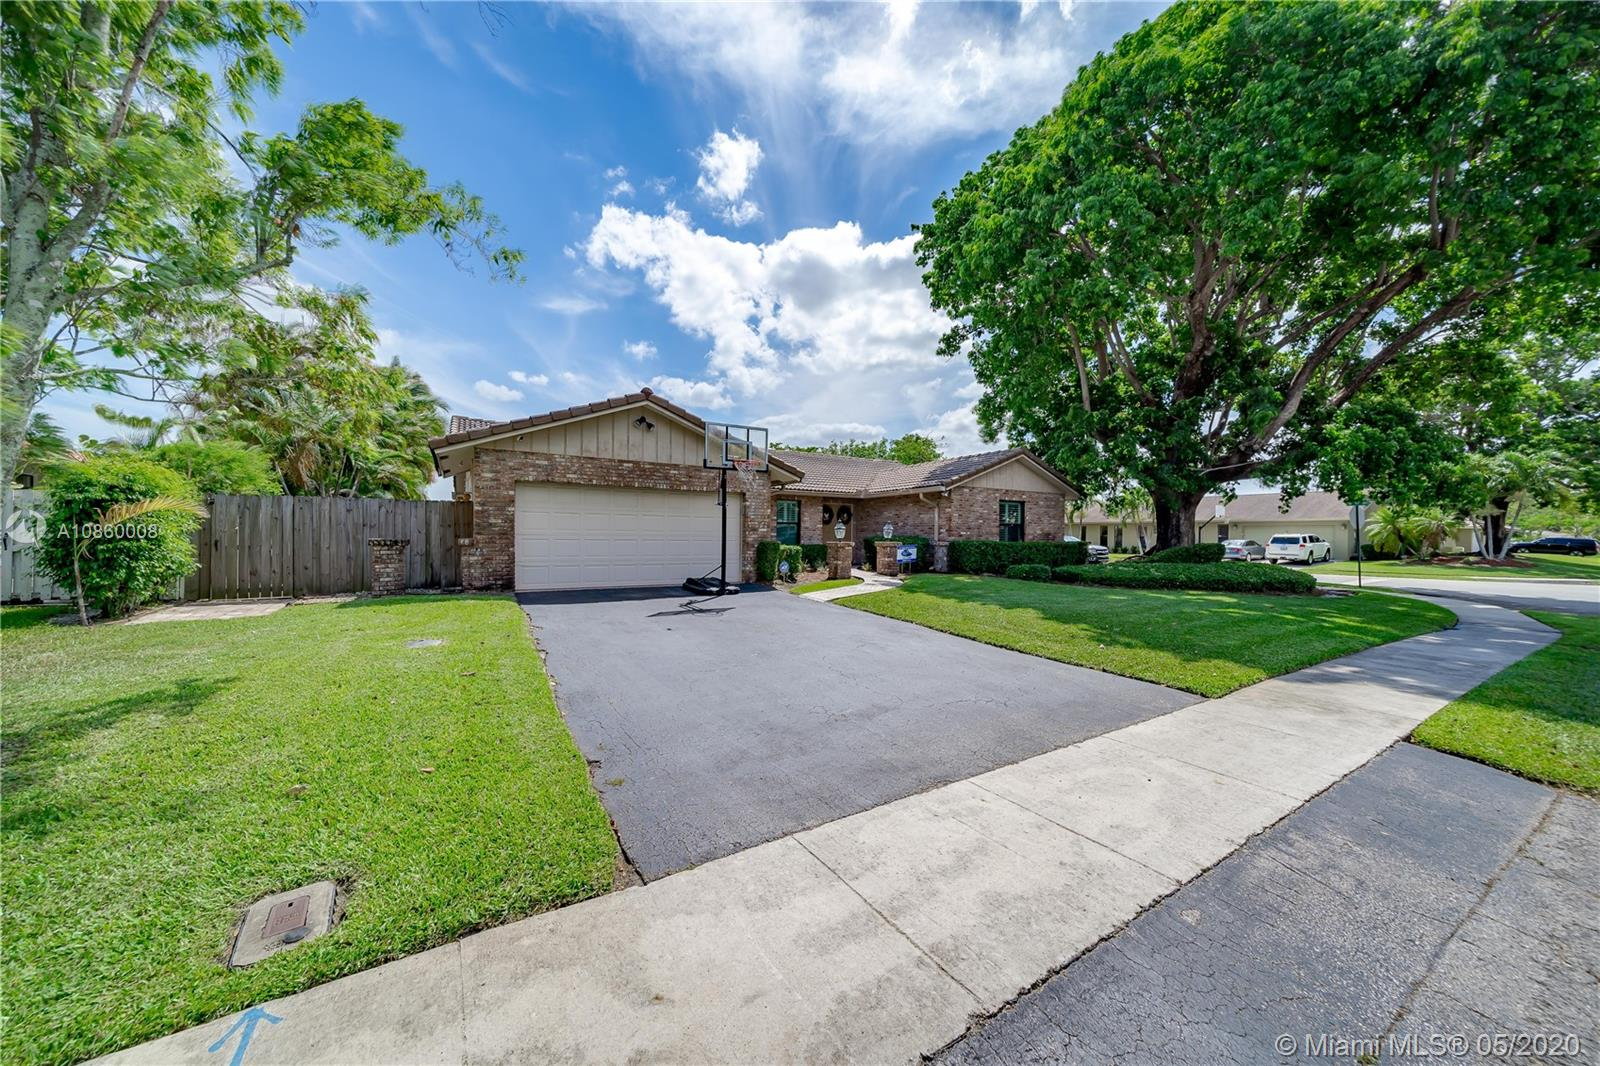 This is the updated home you've been waiting for! Enjoy your drive home on this beautiful tree lined street in one of Plantations most prestigious neighborhoods, Jacaranda Lakes. Stunning 4 bedroom 2 bathroom home on an oversized corner lot. Updated kitchen with granite and overlooking the pool, and family room. Bathrooms and floors have been tastefully updated. Hurricane impact and doors throughout so no worries here going into hurricane season! LOW HOA! Zoned for one of the best rated elementary schools in the county! Easy access to highways, shops and restaurants!